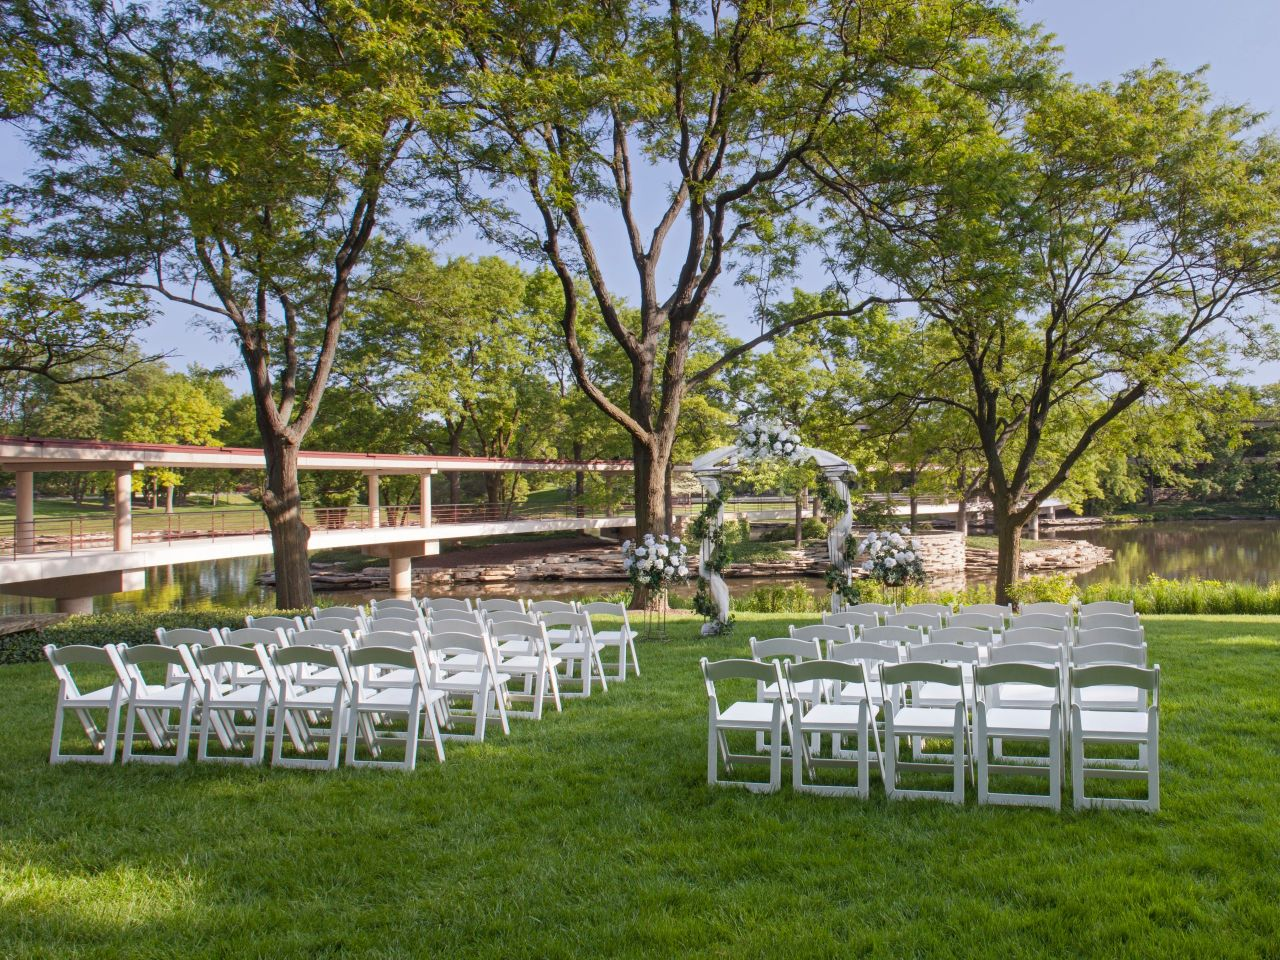 Hyatt Lodge at McDonald's Campus, wedding outdoor ceremony set-up